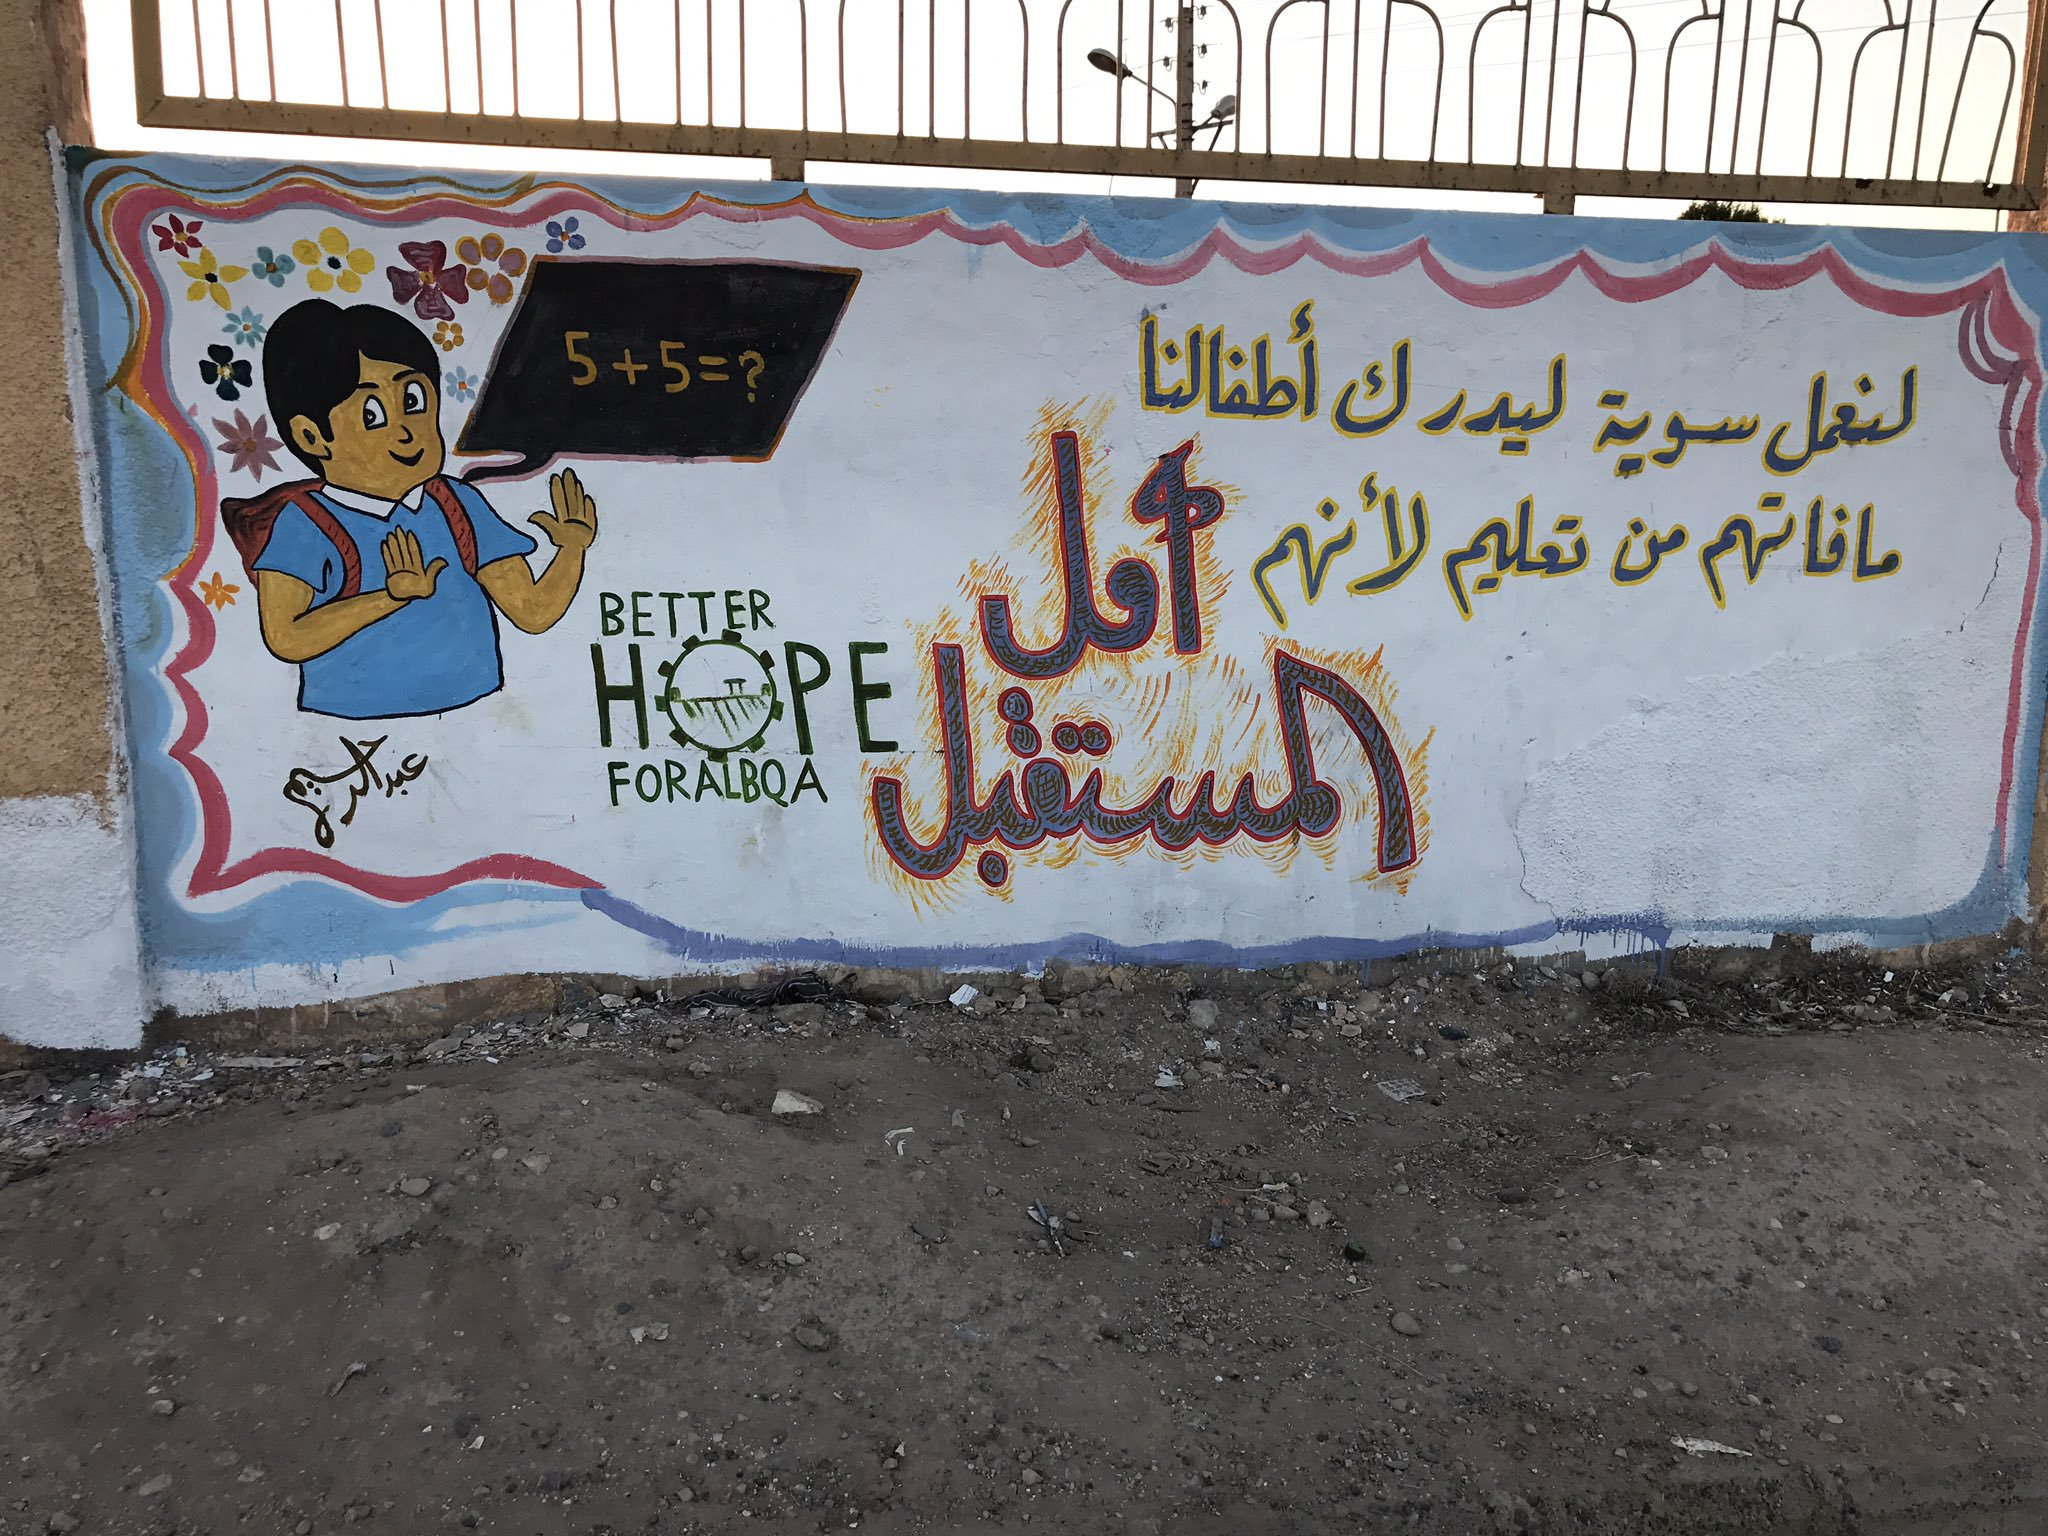 A mural in Tabqa promotes education